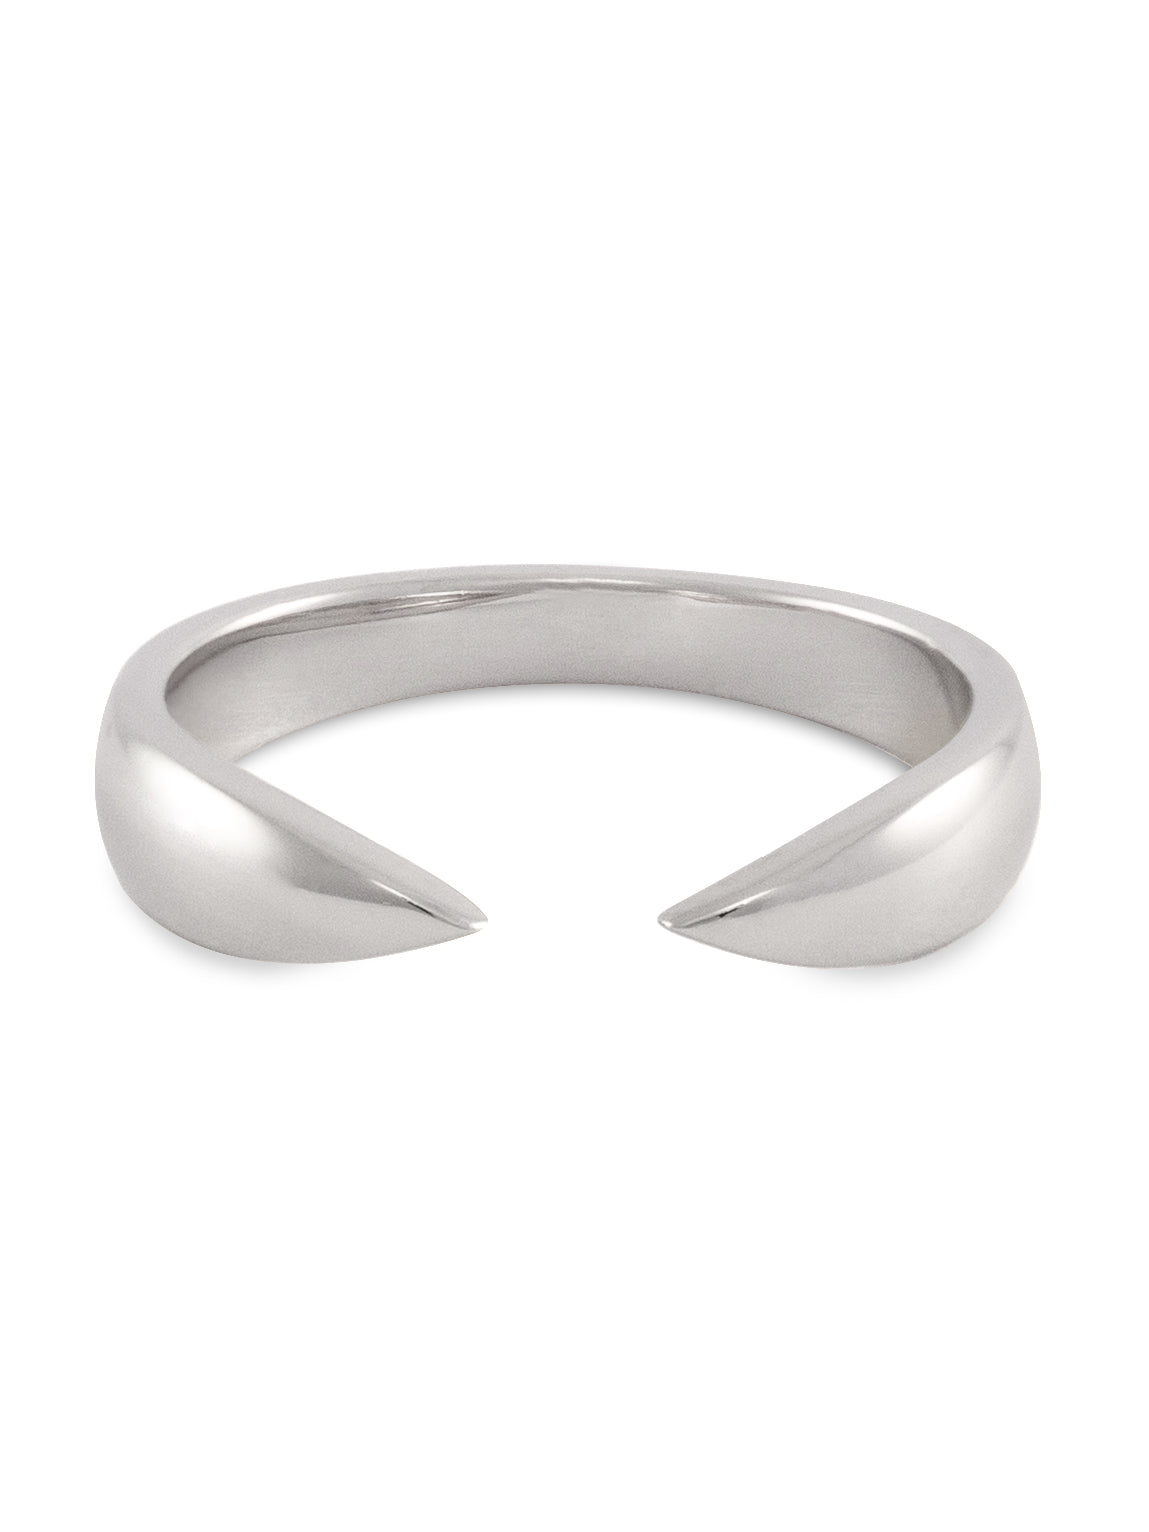 Silver Open Claw Ring